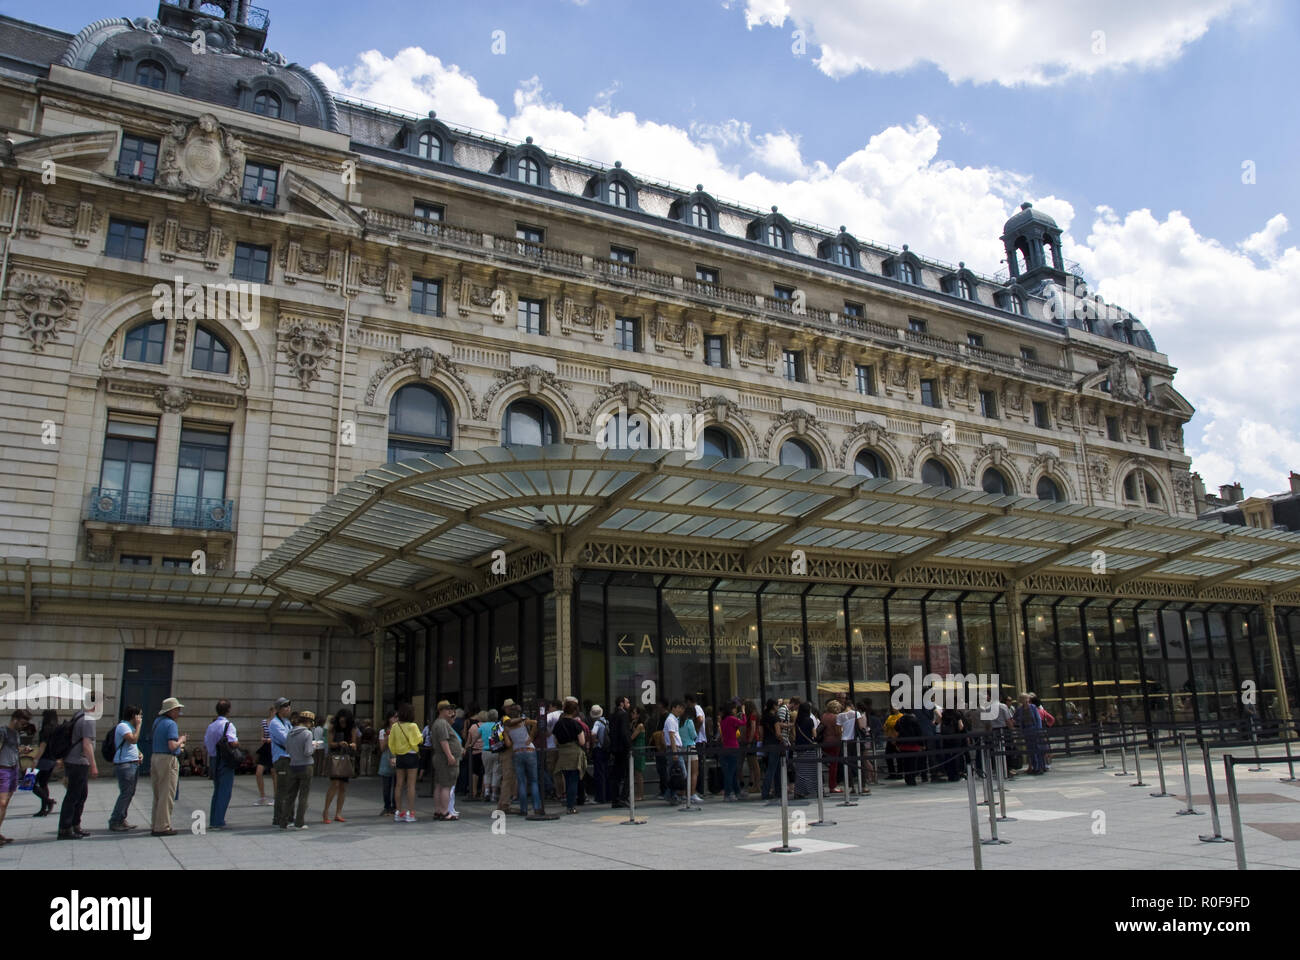 Tourists wait to enter the Musee d'Orsay, an art museum housed in the former Gare d'Orsay, a Beaux-Arts railway station, Paris, France. Stock Photo